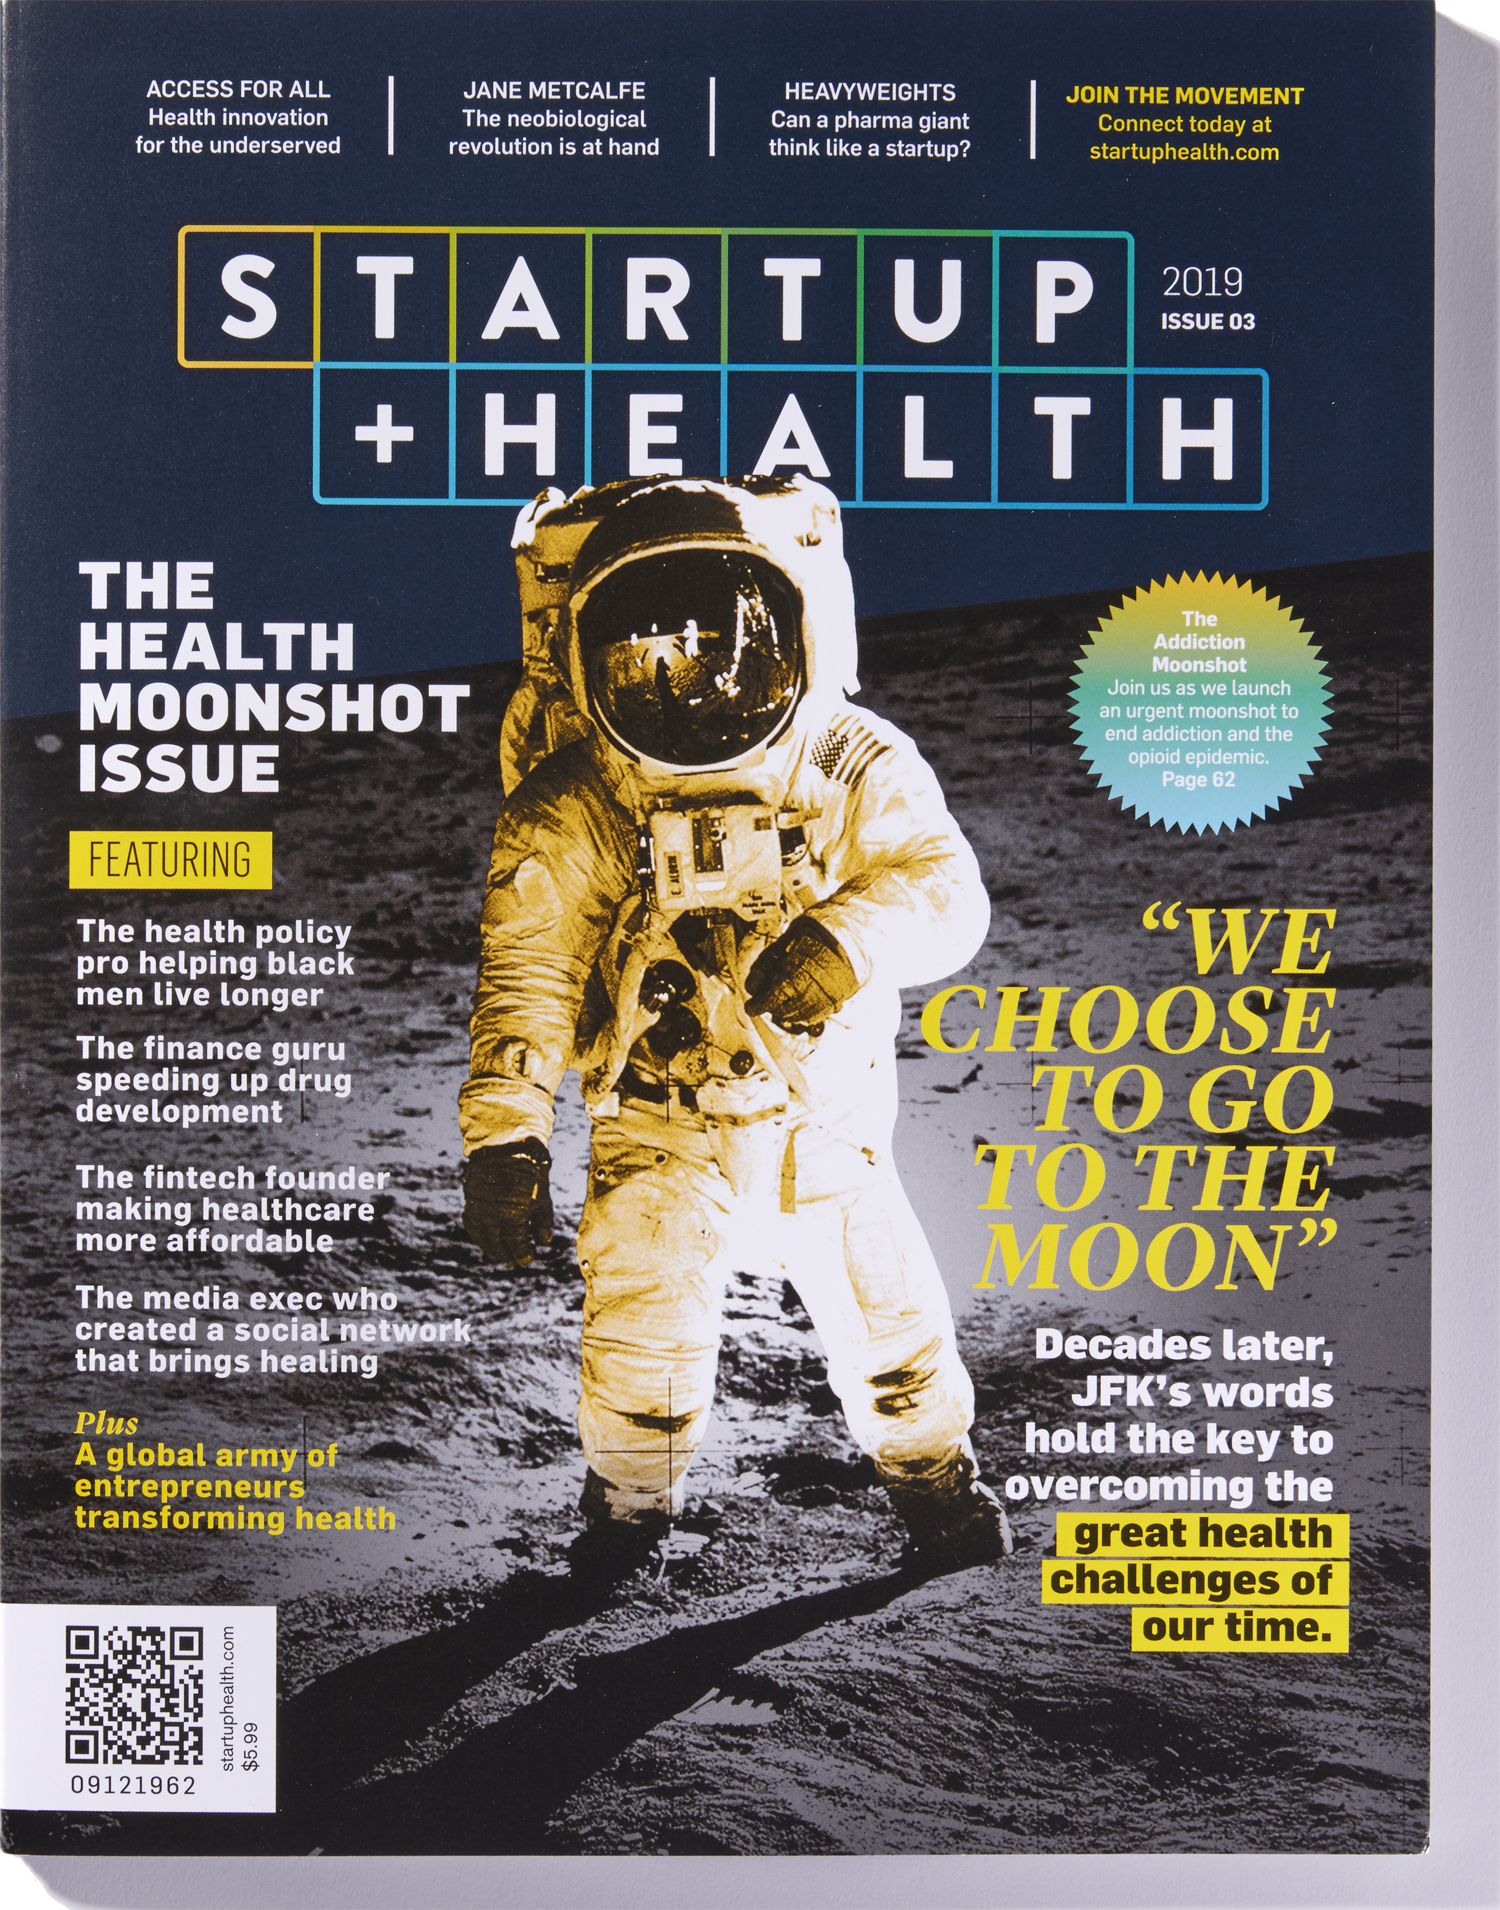 Start_up_health-13-cropped.png